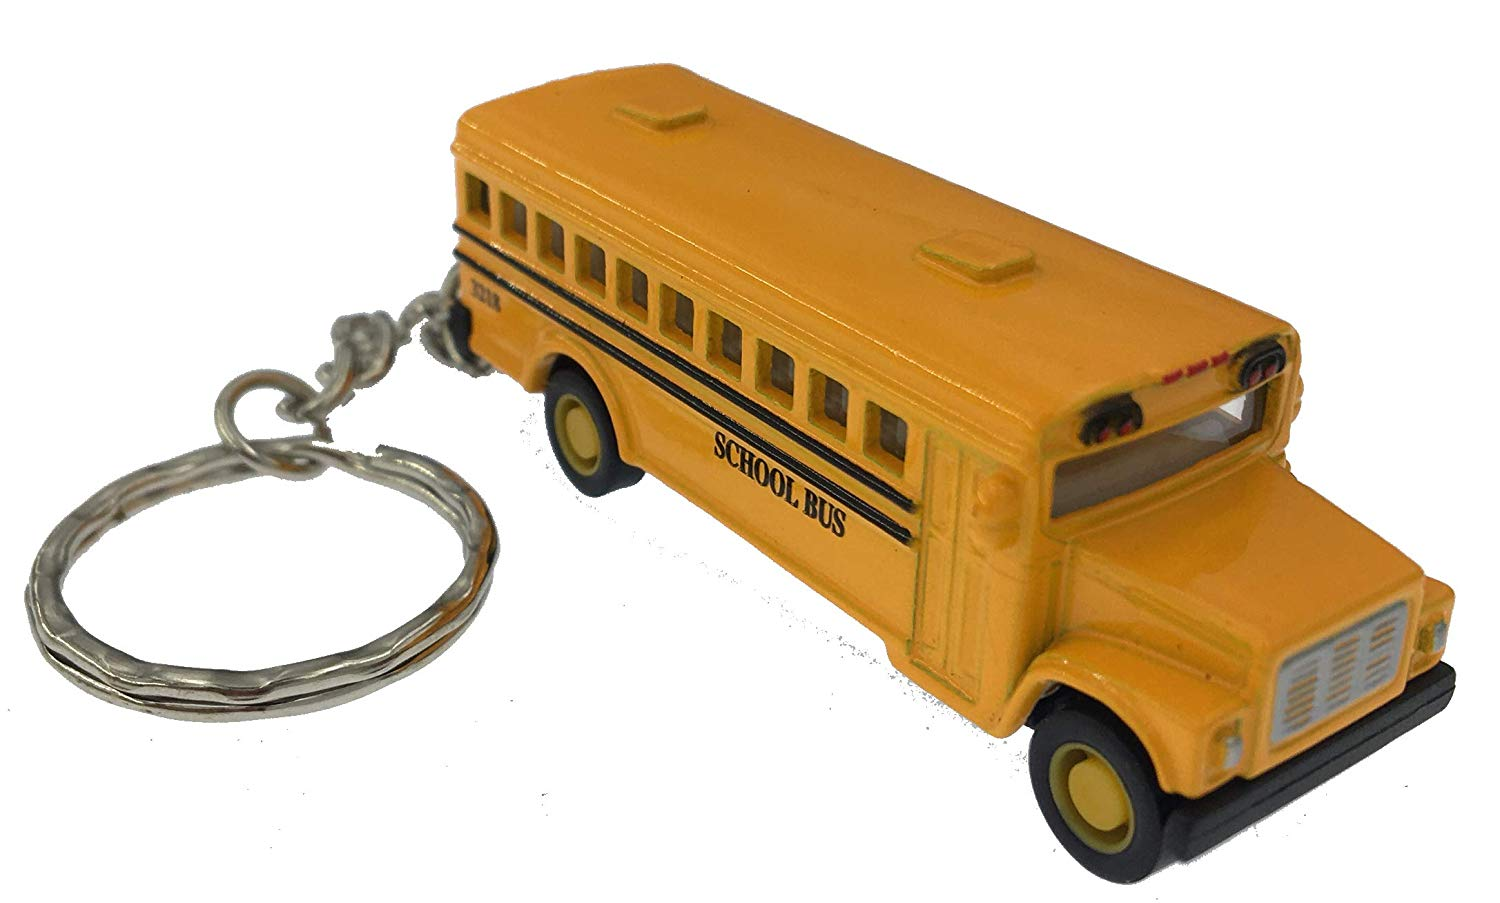 A mini school bus keychain for bus driver